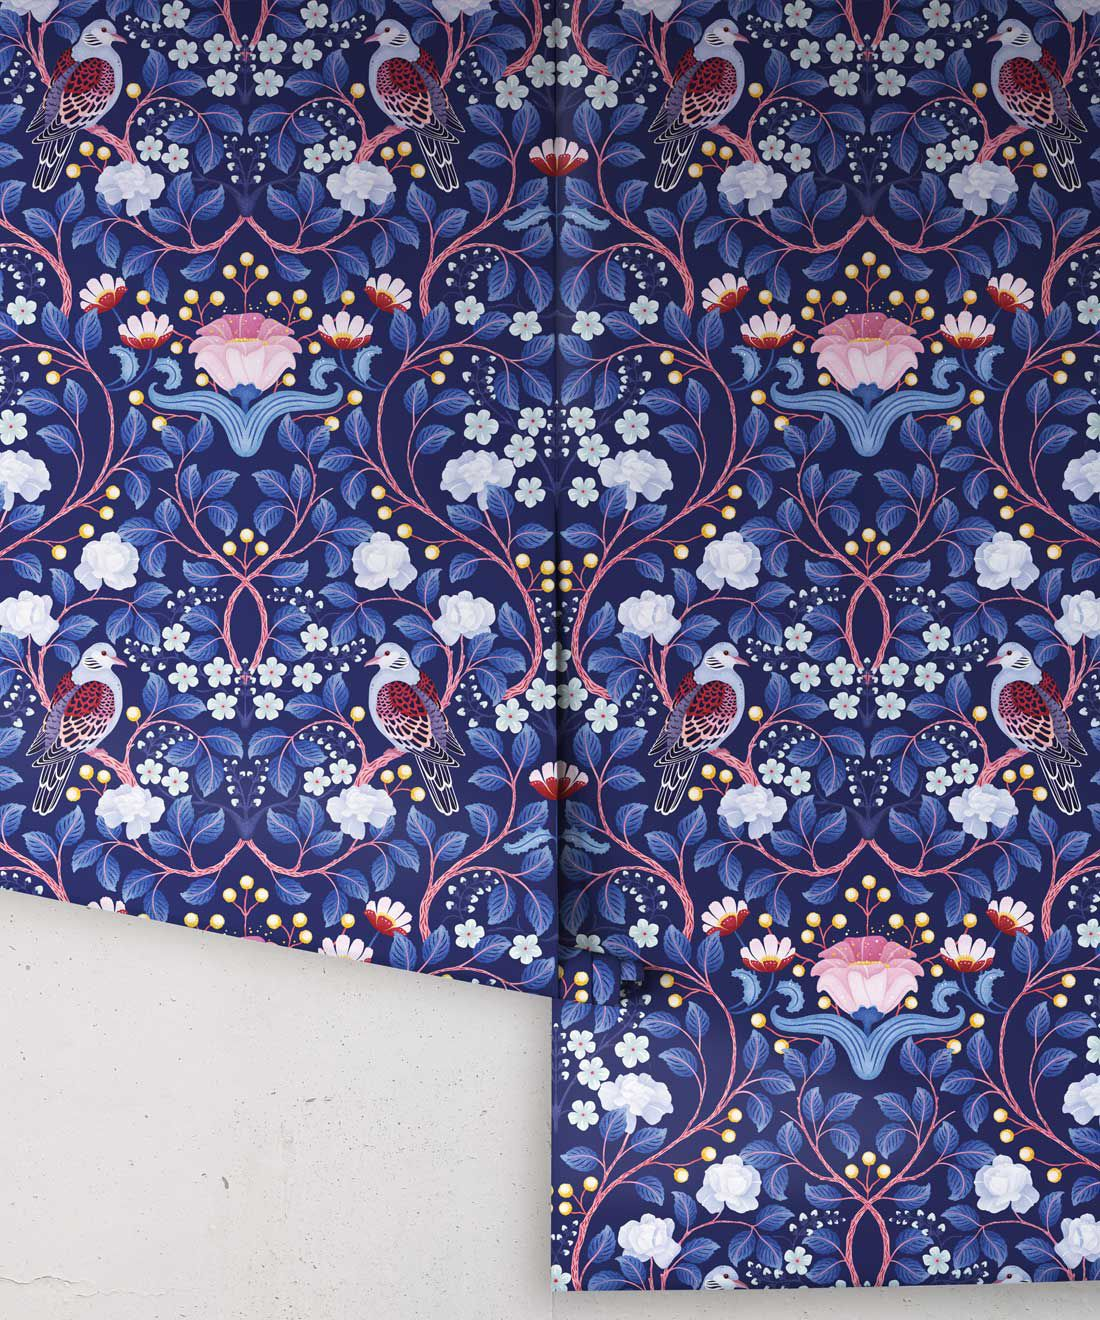 Turtle Doves Wallpaper • Bold Colorful Bird Wallpaper • Blueberry •Rolls